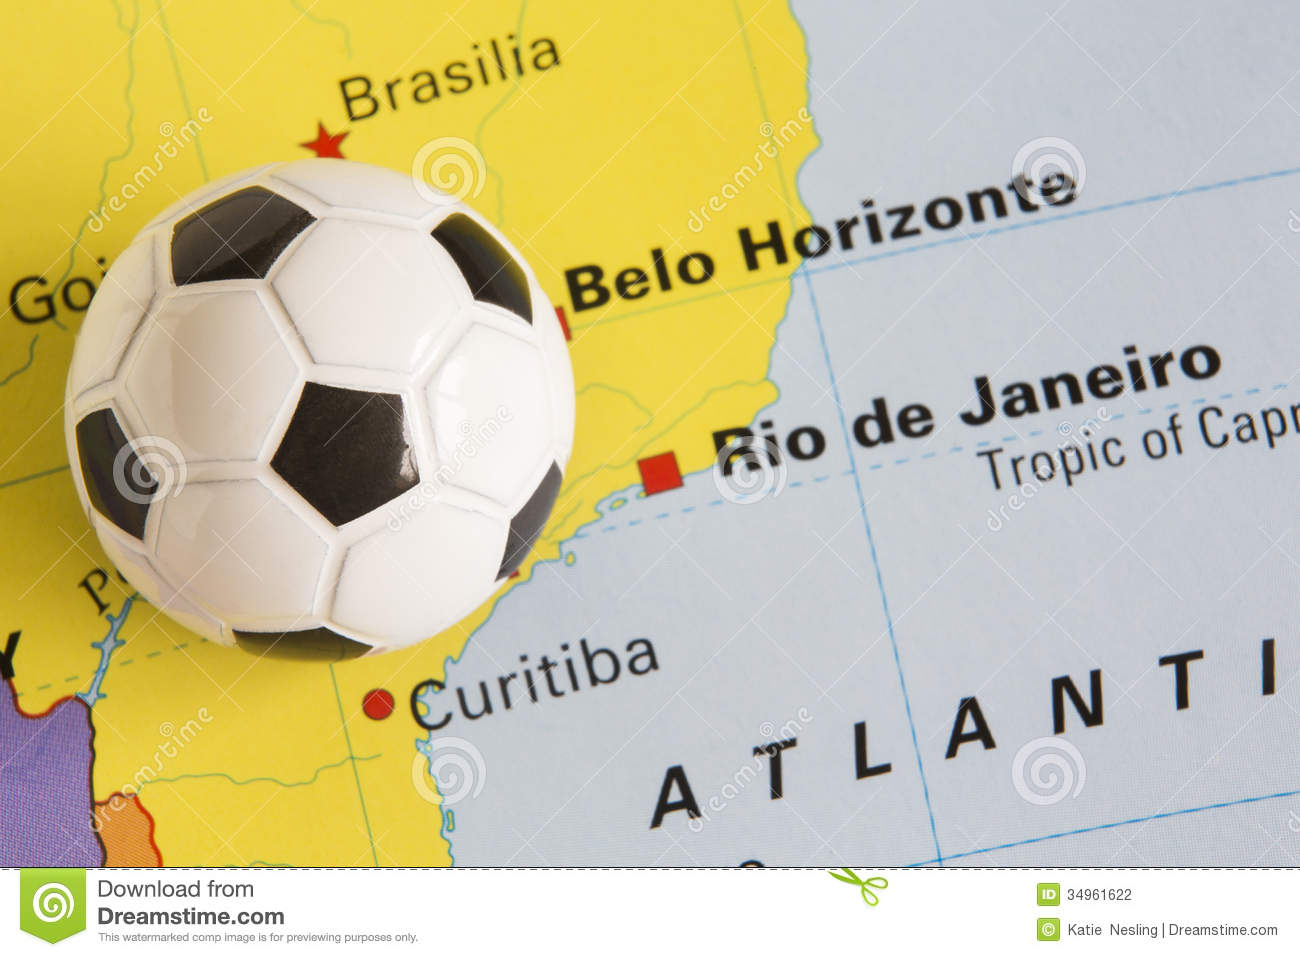 Football on map of brazil to show 2014 rio fifa world cup tournament football on map of brazil to show 2014 rio fifa world cup tournament gumiabroncs Gallery